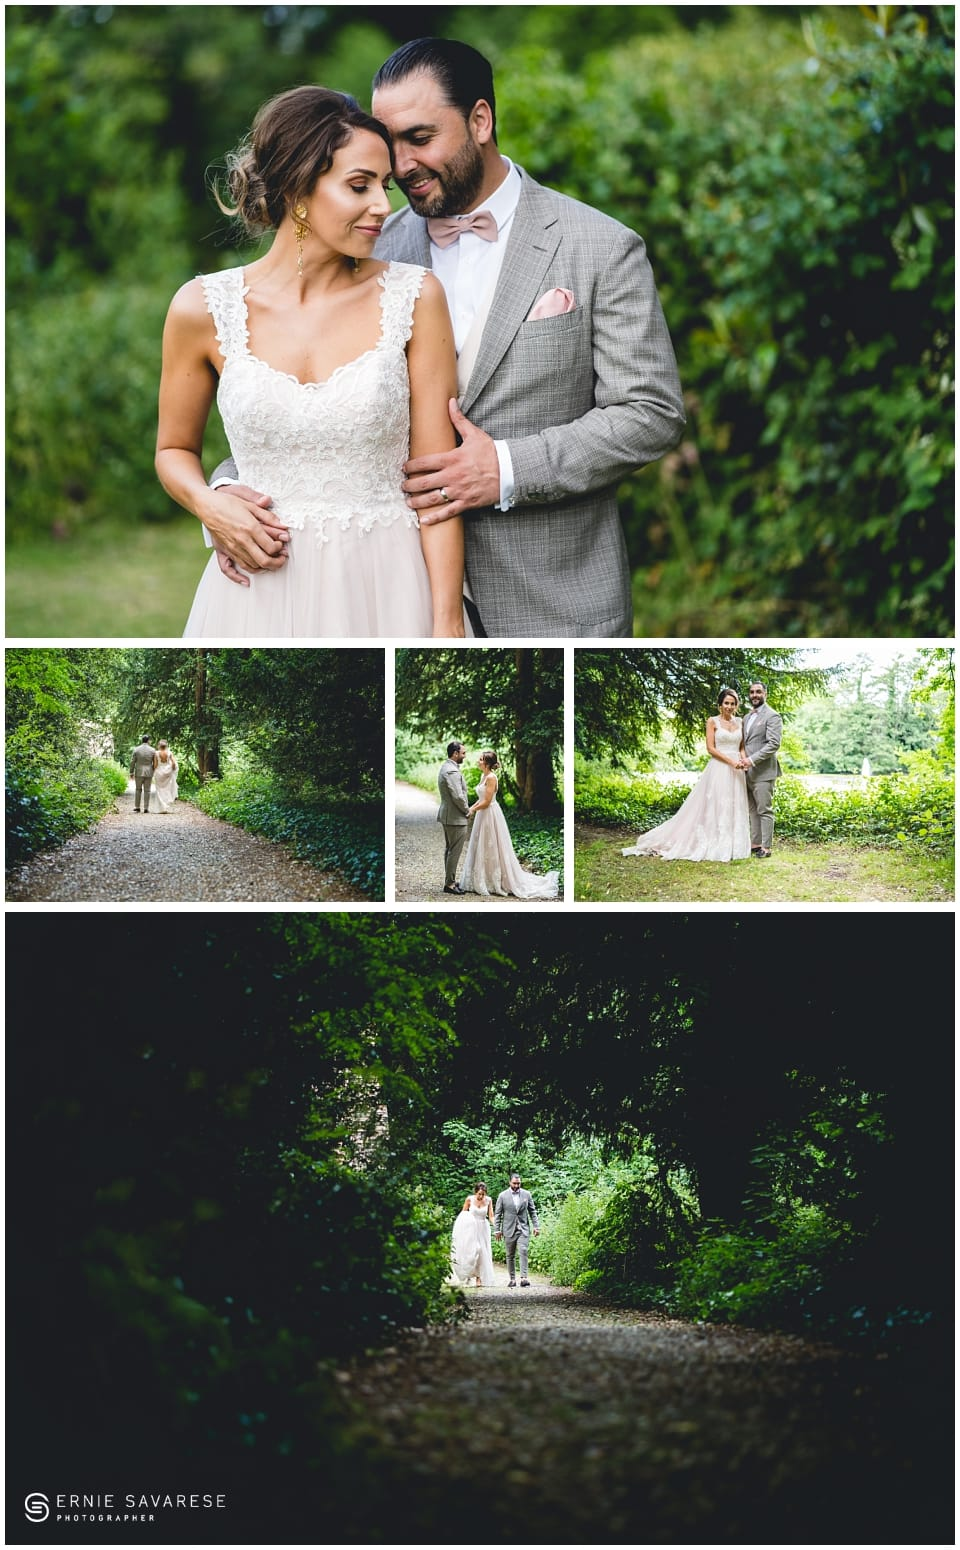 Bromley Registry Office Wedding